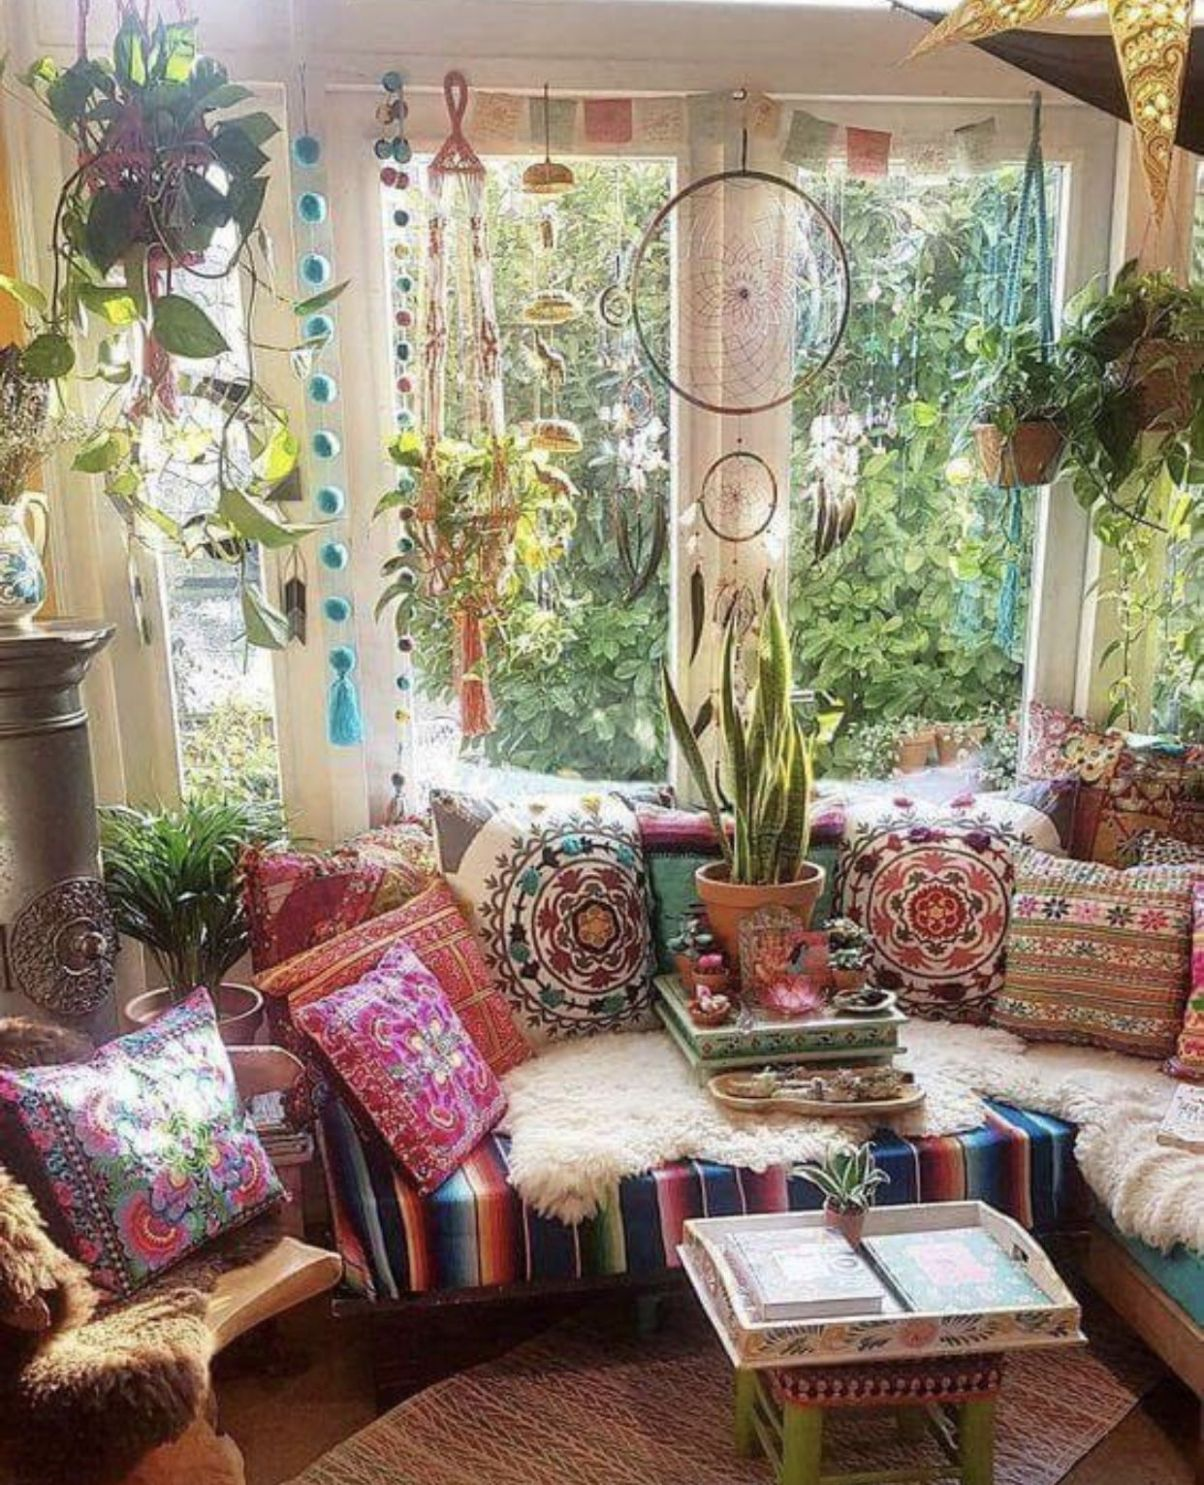 Hippie lounge (With images) | Bohemian living room decor - living room ideas hippie